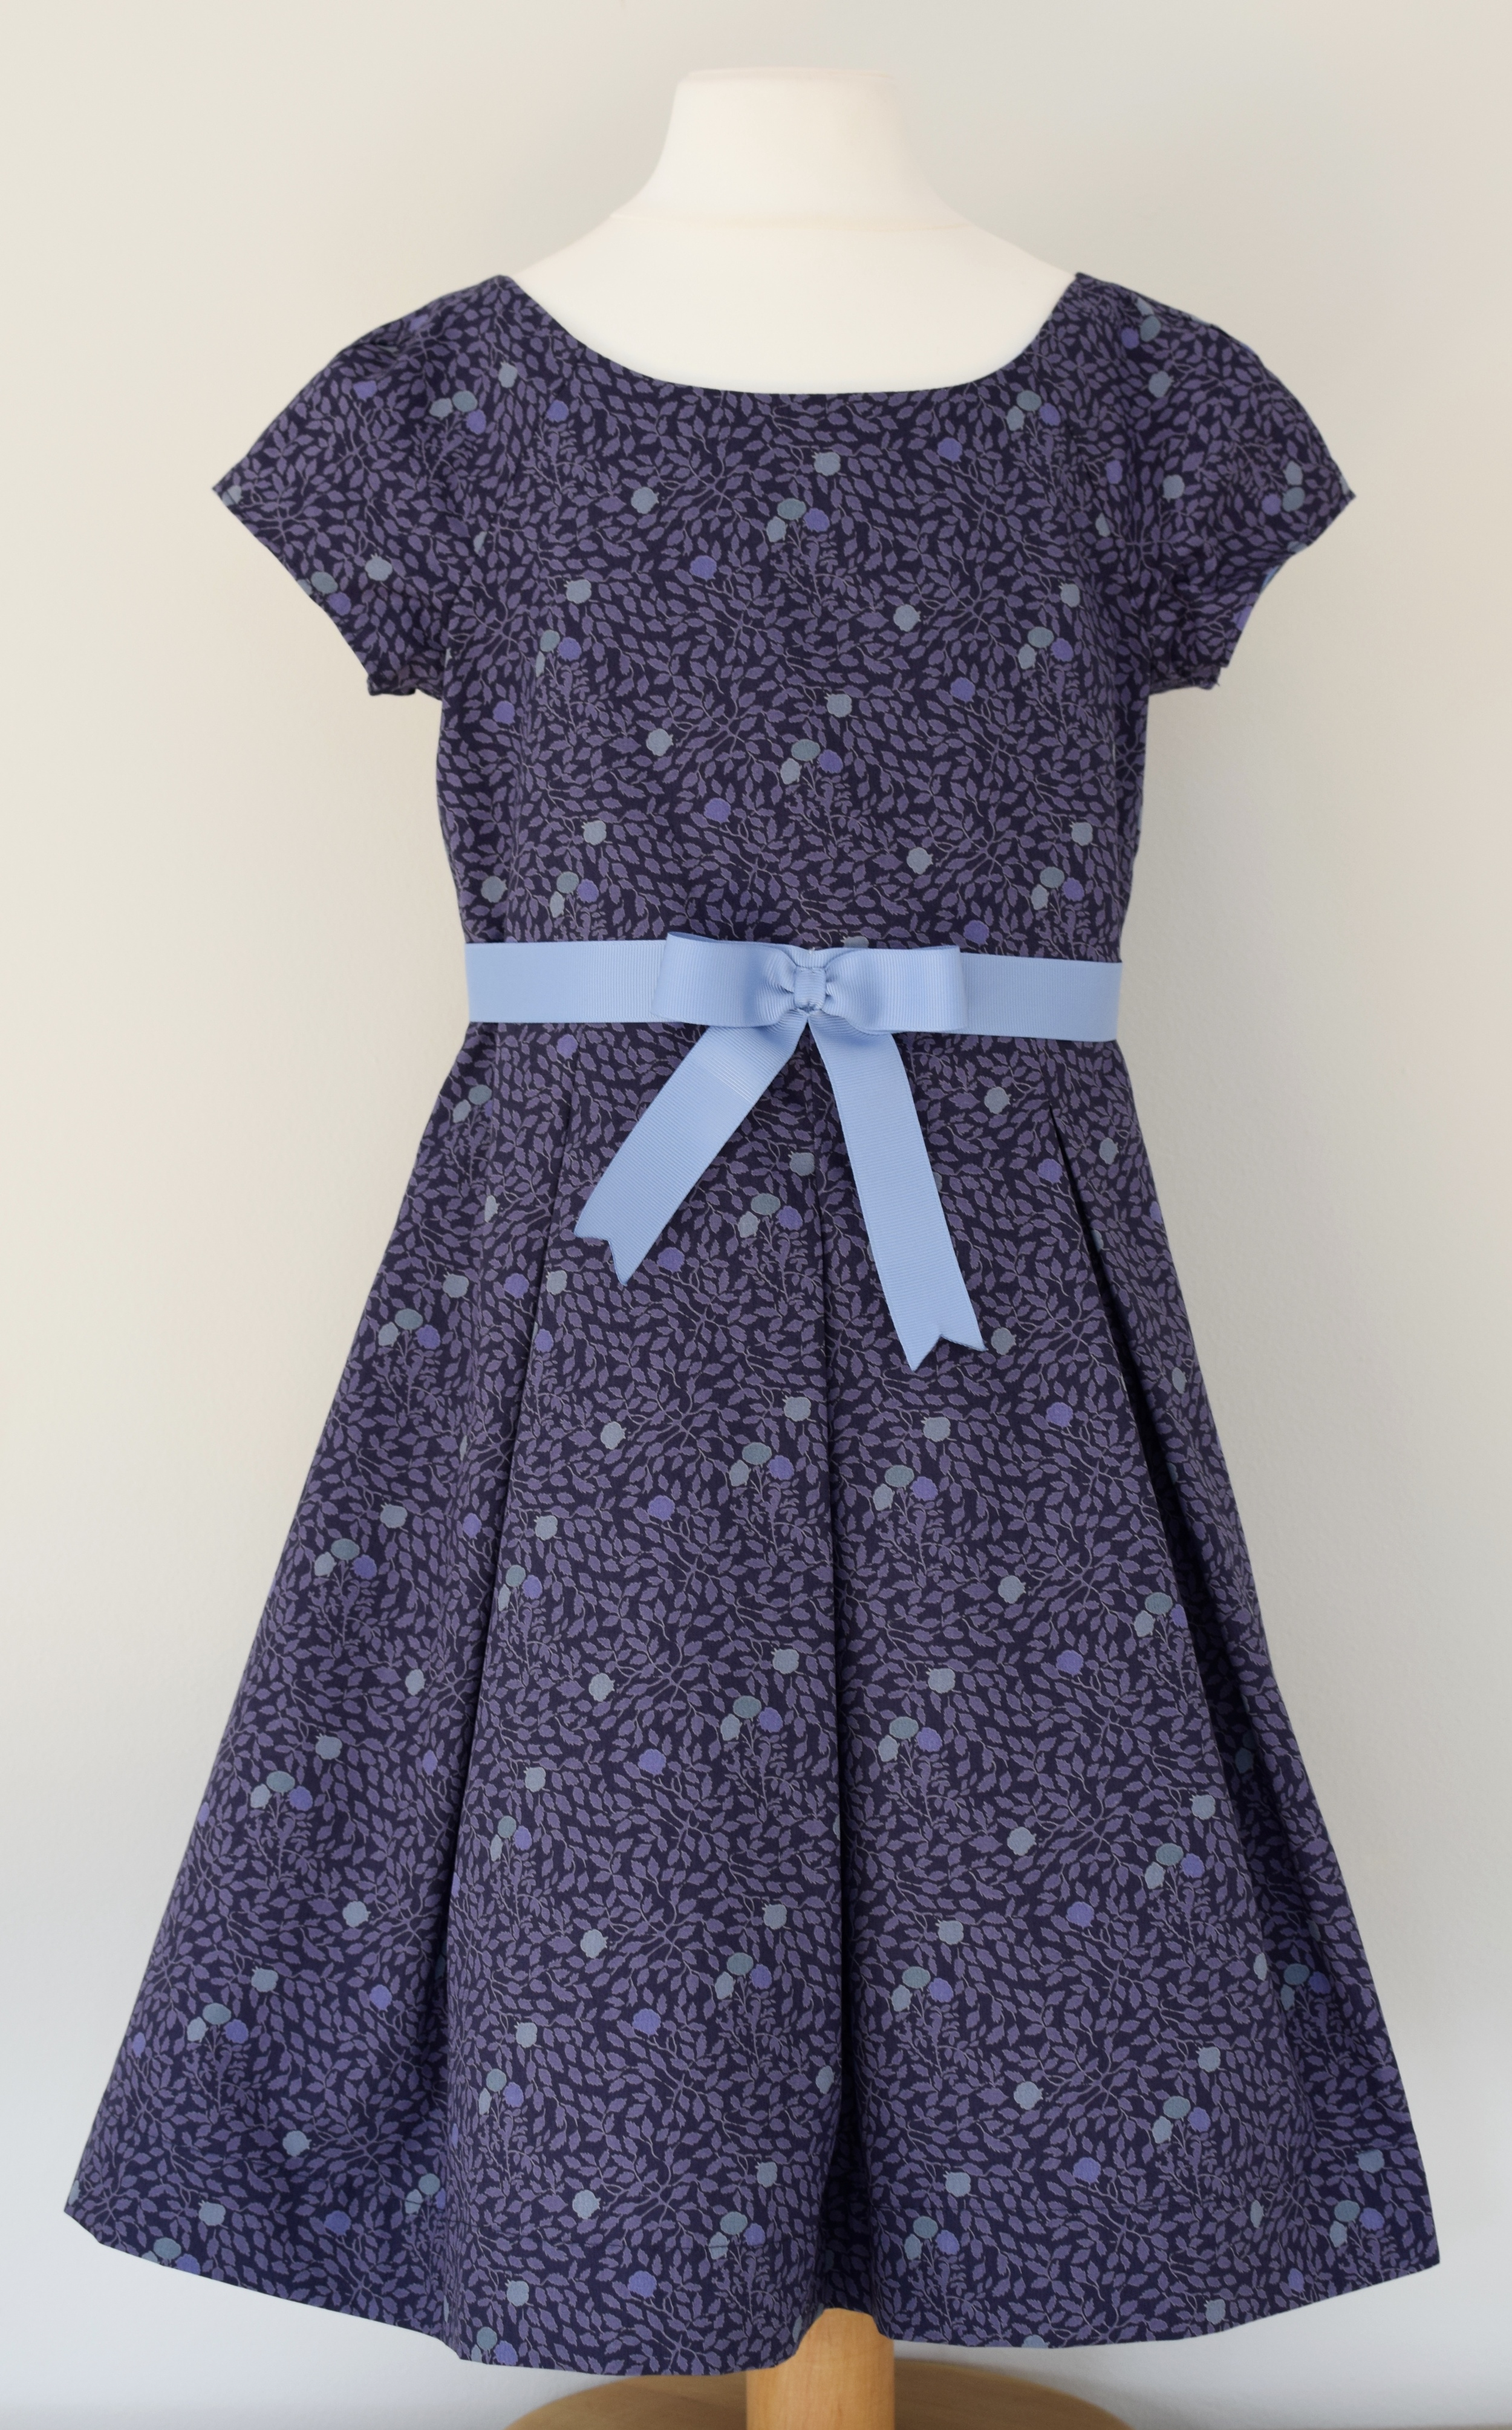 Isla Jane party dress £43   Liberty print party dress: fully lined with cap sleeves, fixed grosgrain ribbon and a concealed zip at the back. Available exclusively in size 5y.